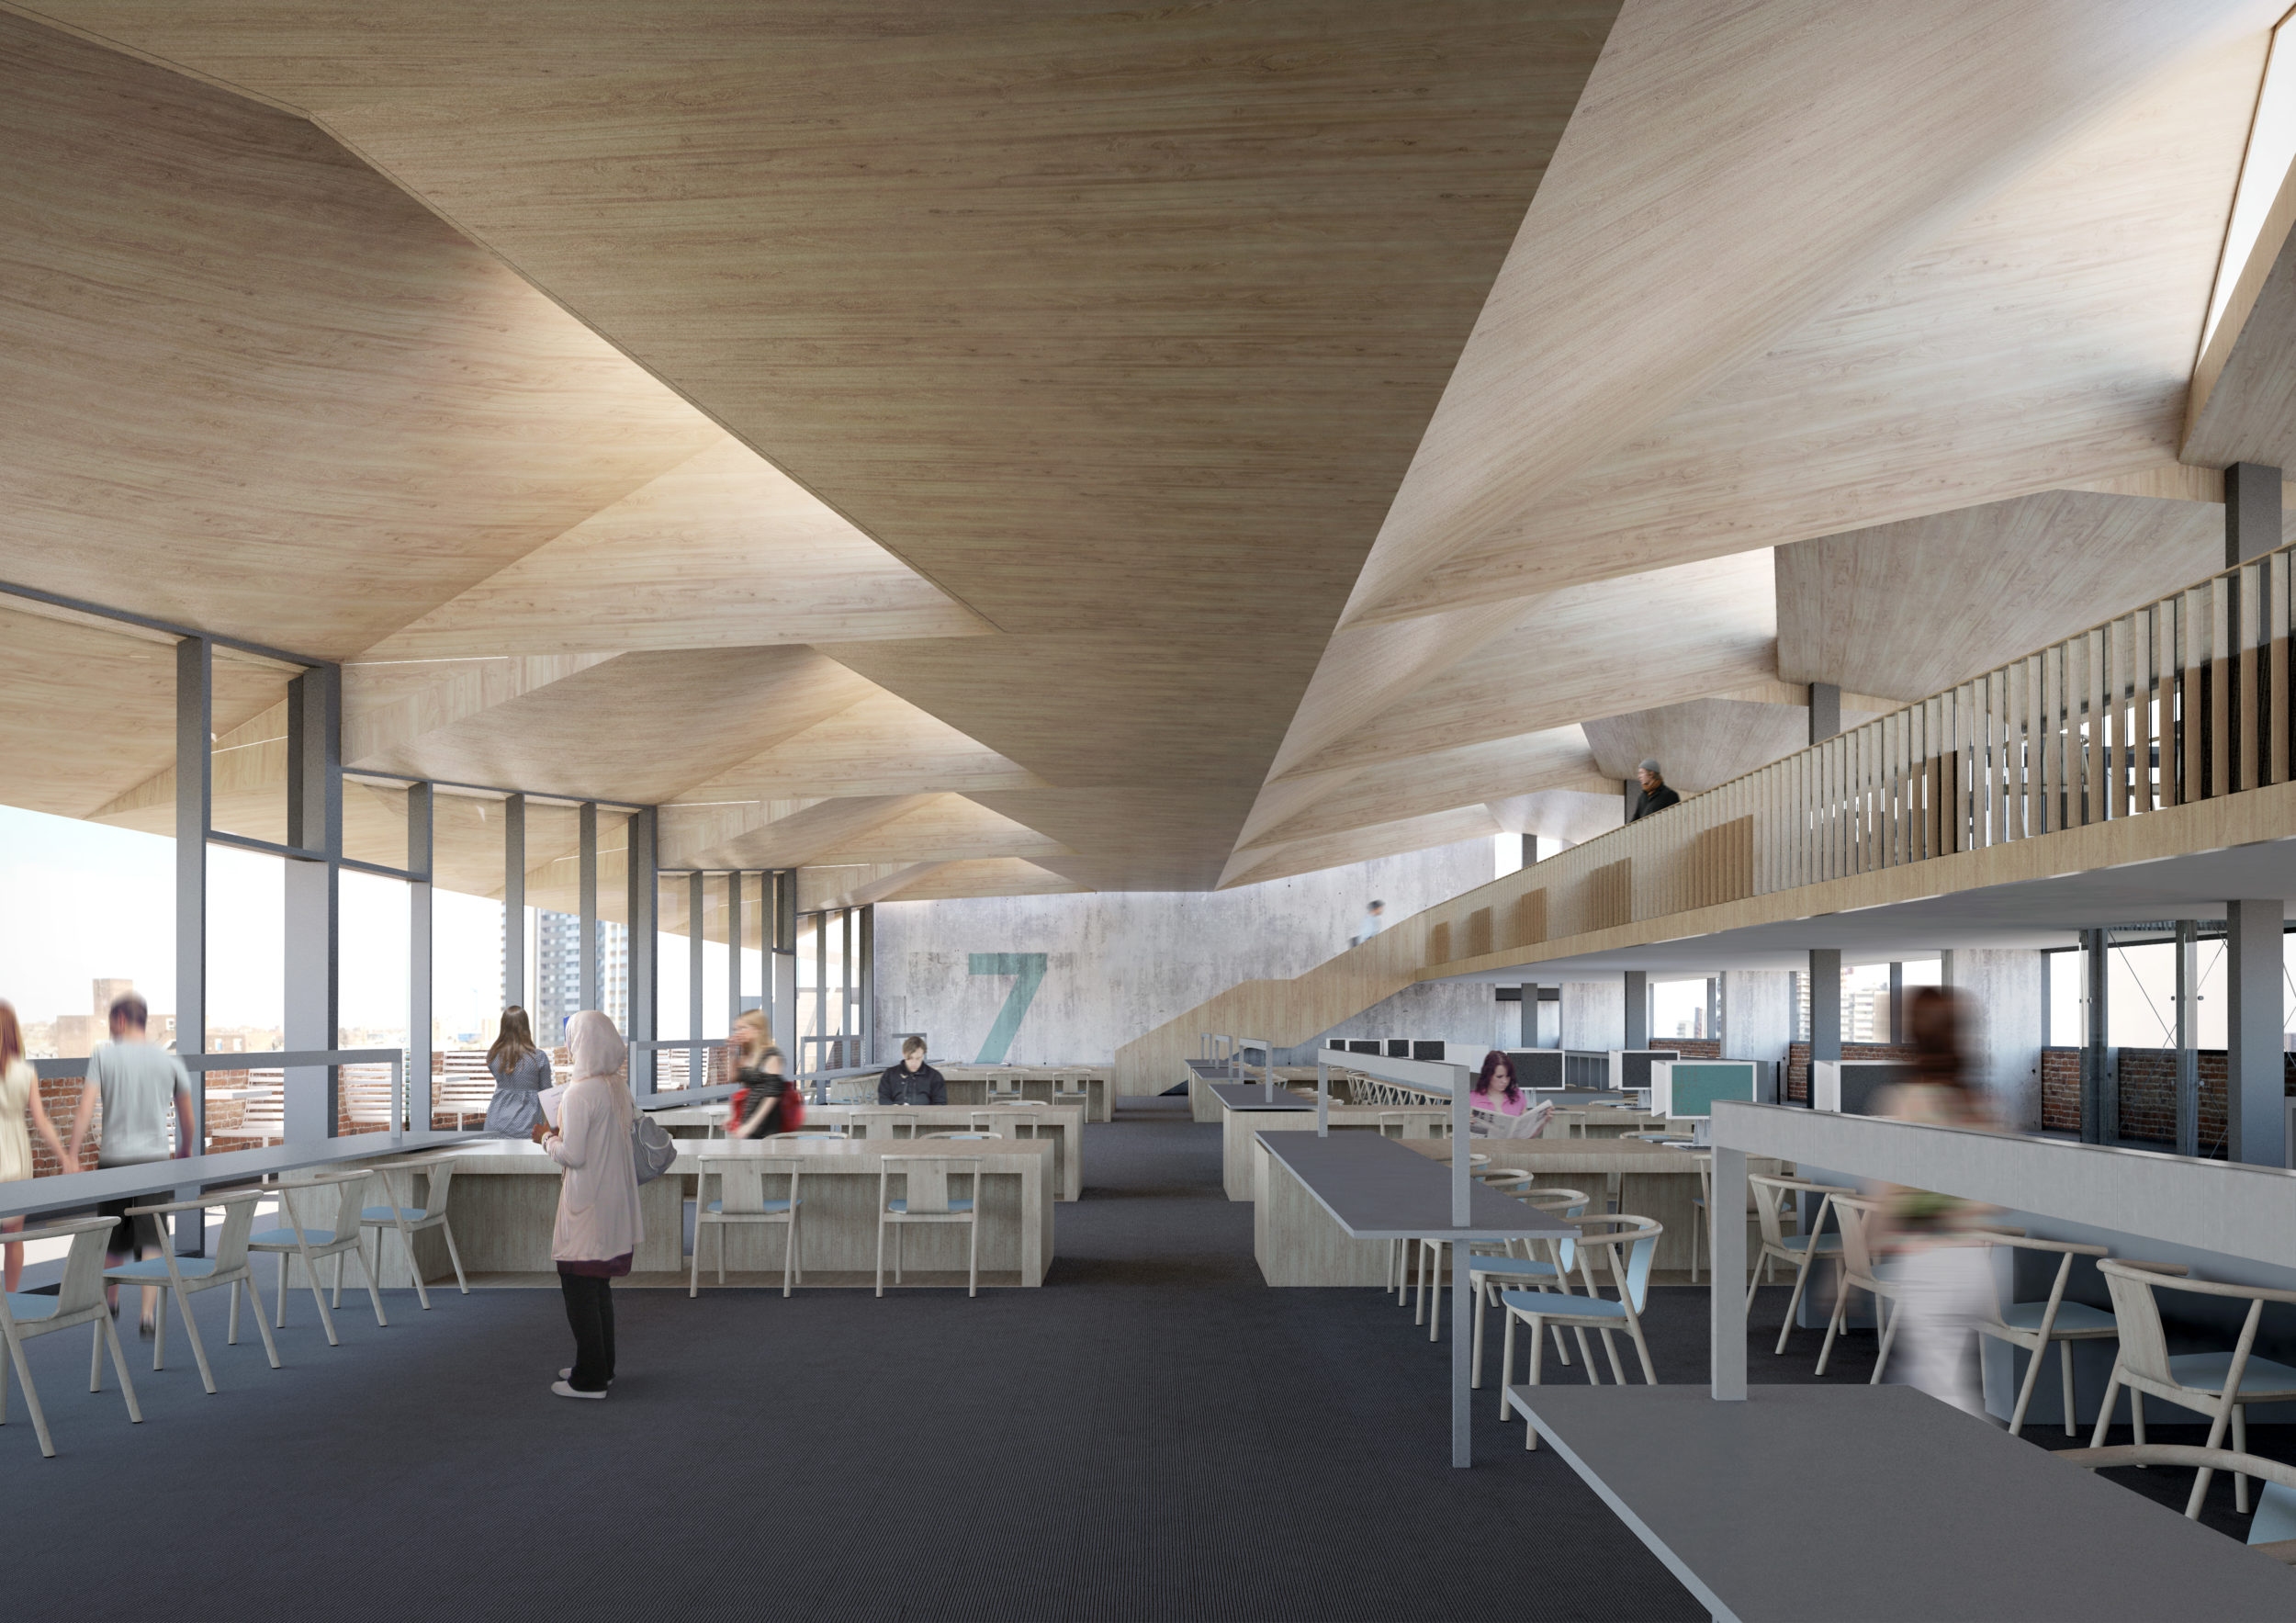 Academic Library Design University LTS Architects